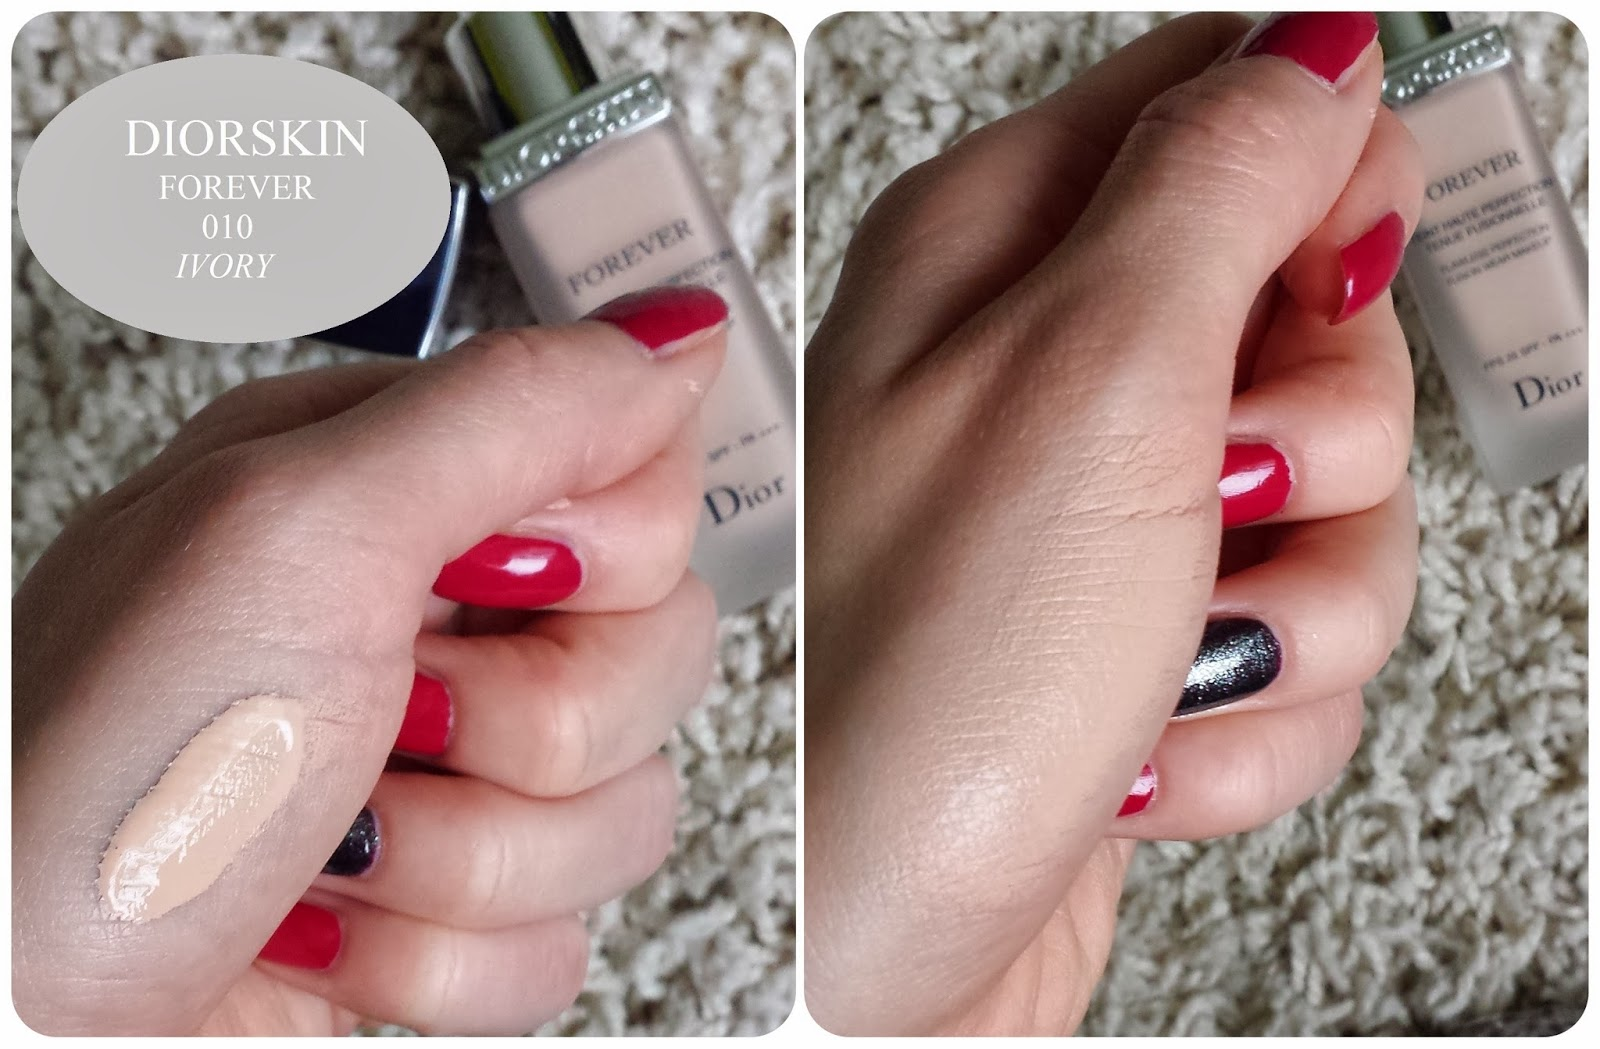 Ogromny Confession of a beautyholic...: DIORSKIN FOREVER 010 ivory EH81